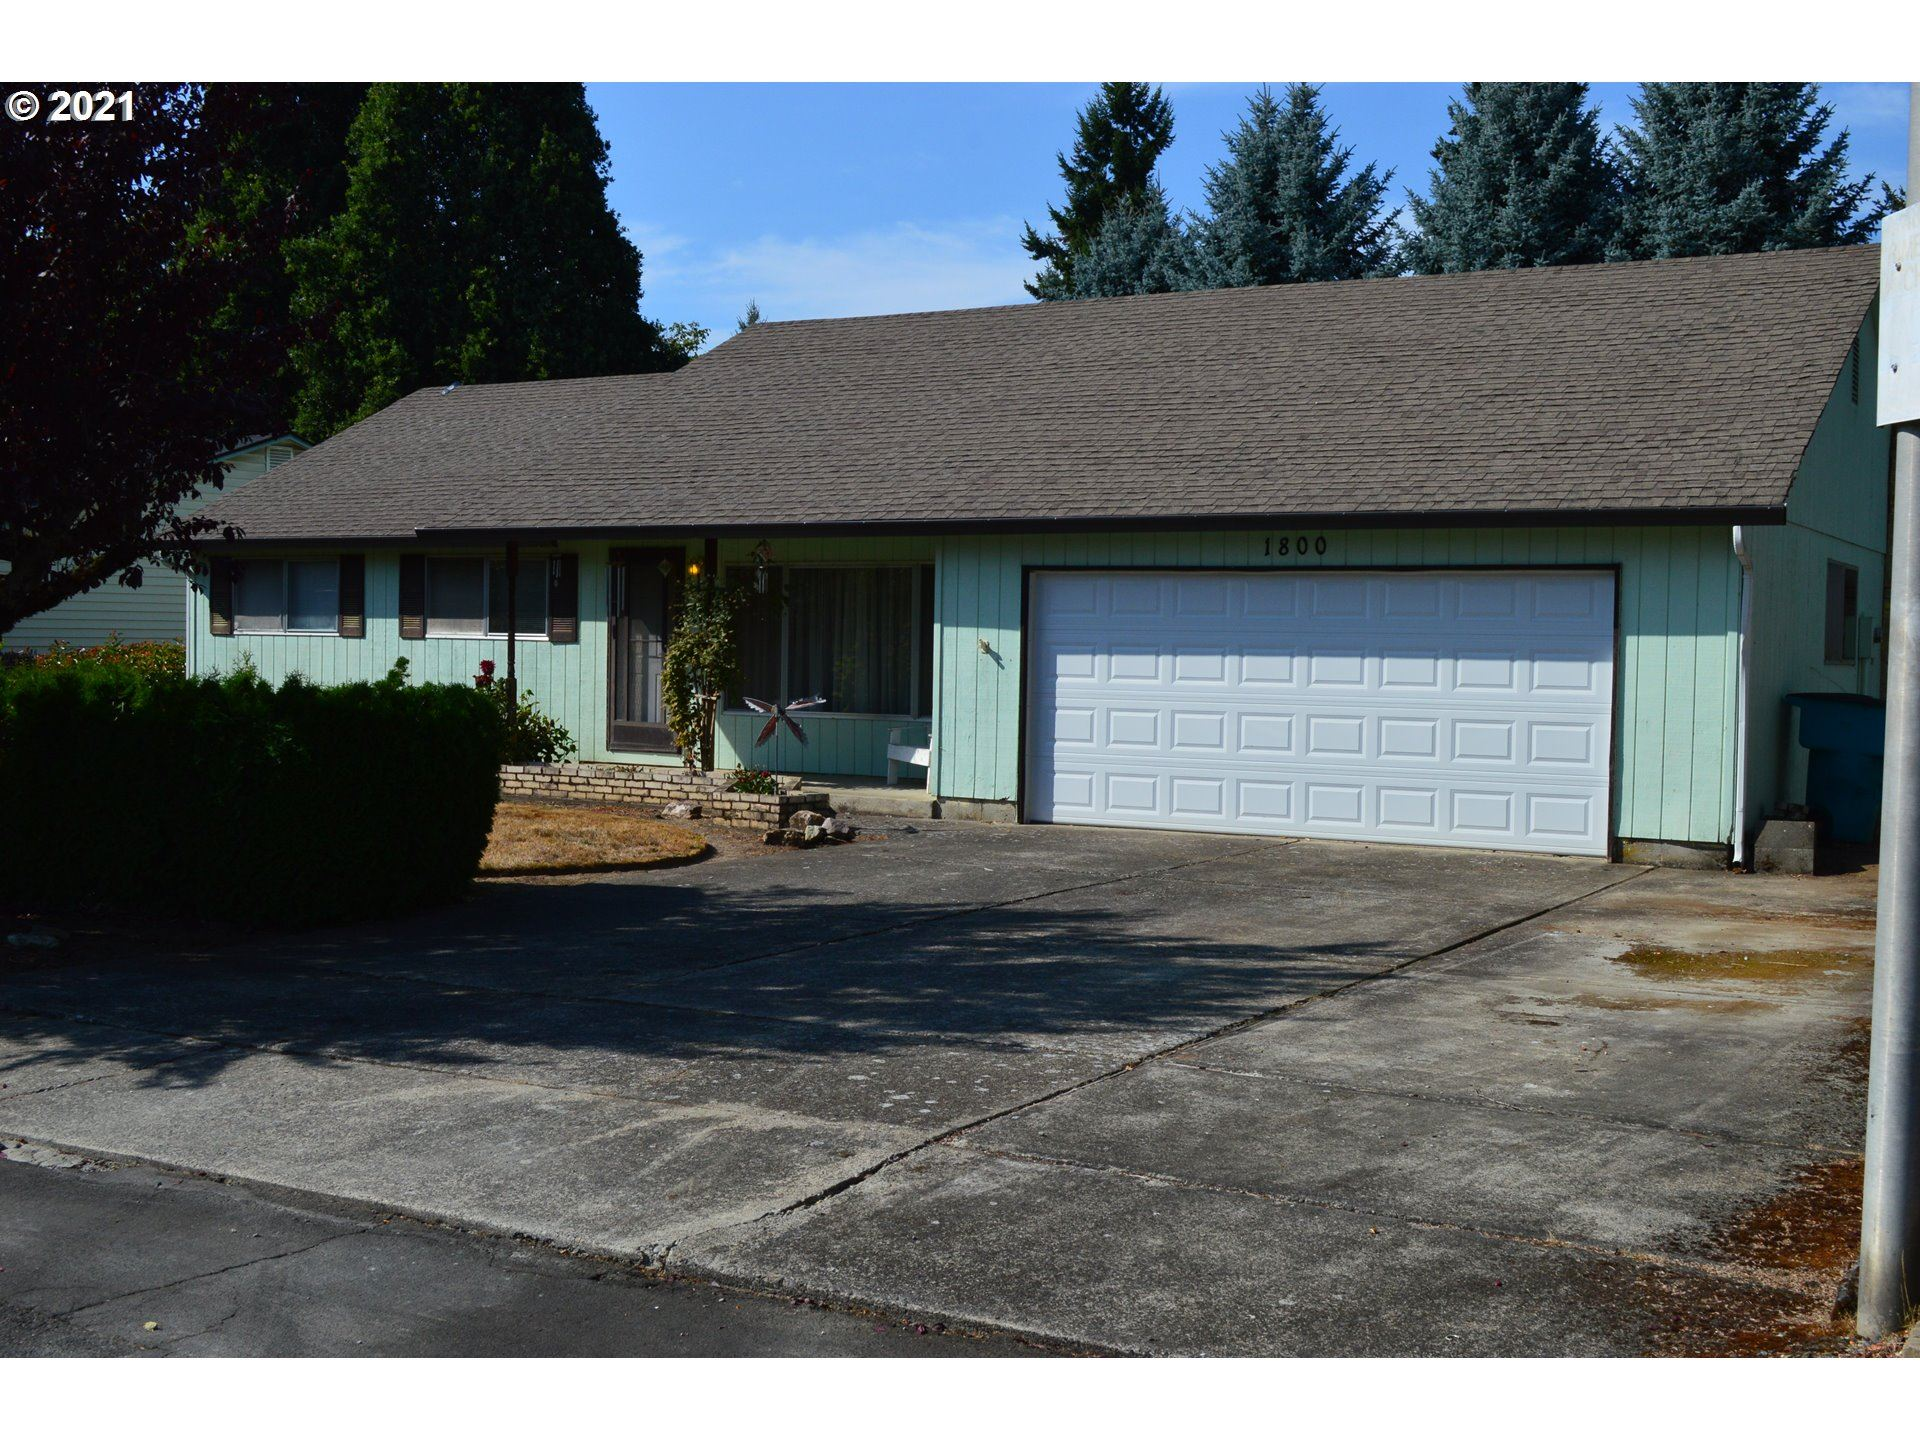 1800 NW 106TH ST, Vancouver, WA 98685 - MLS#: 21595275